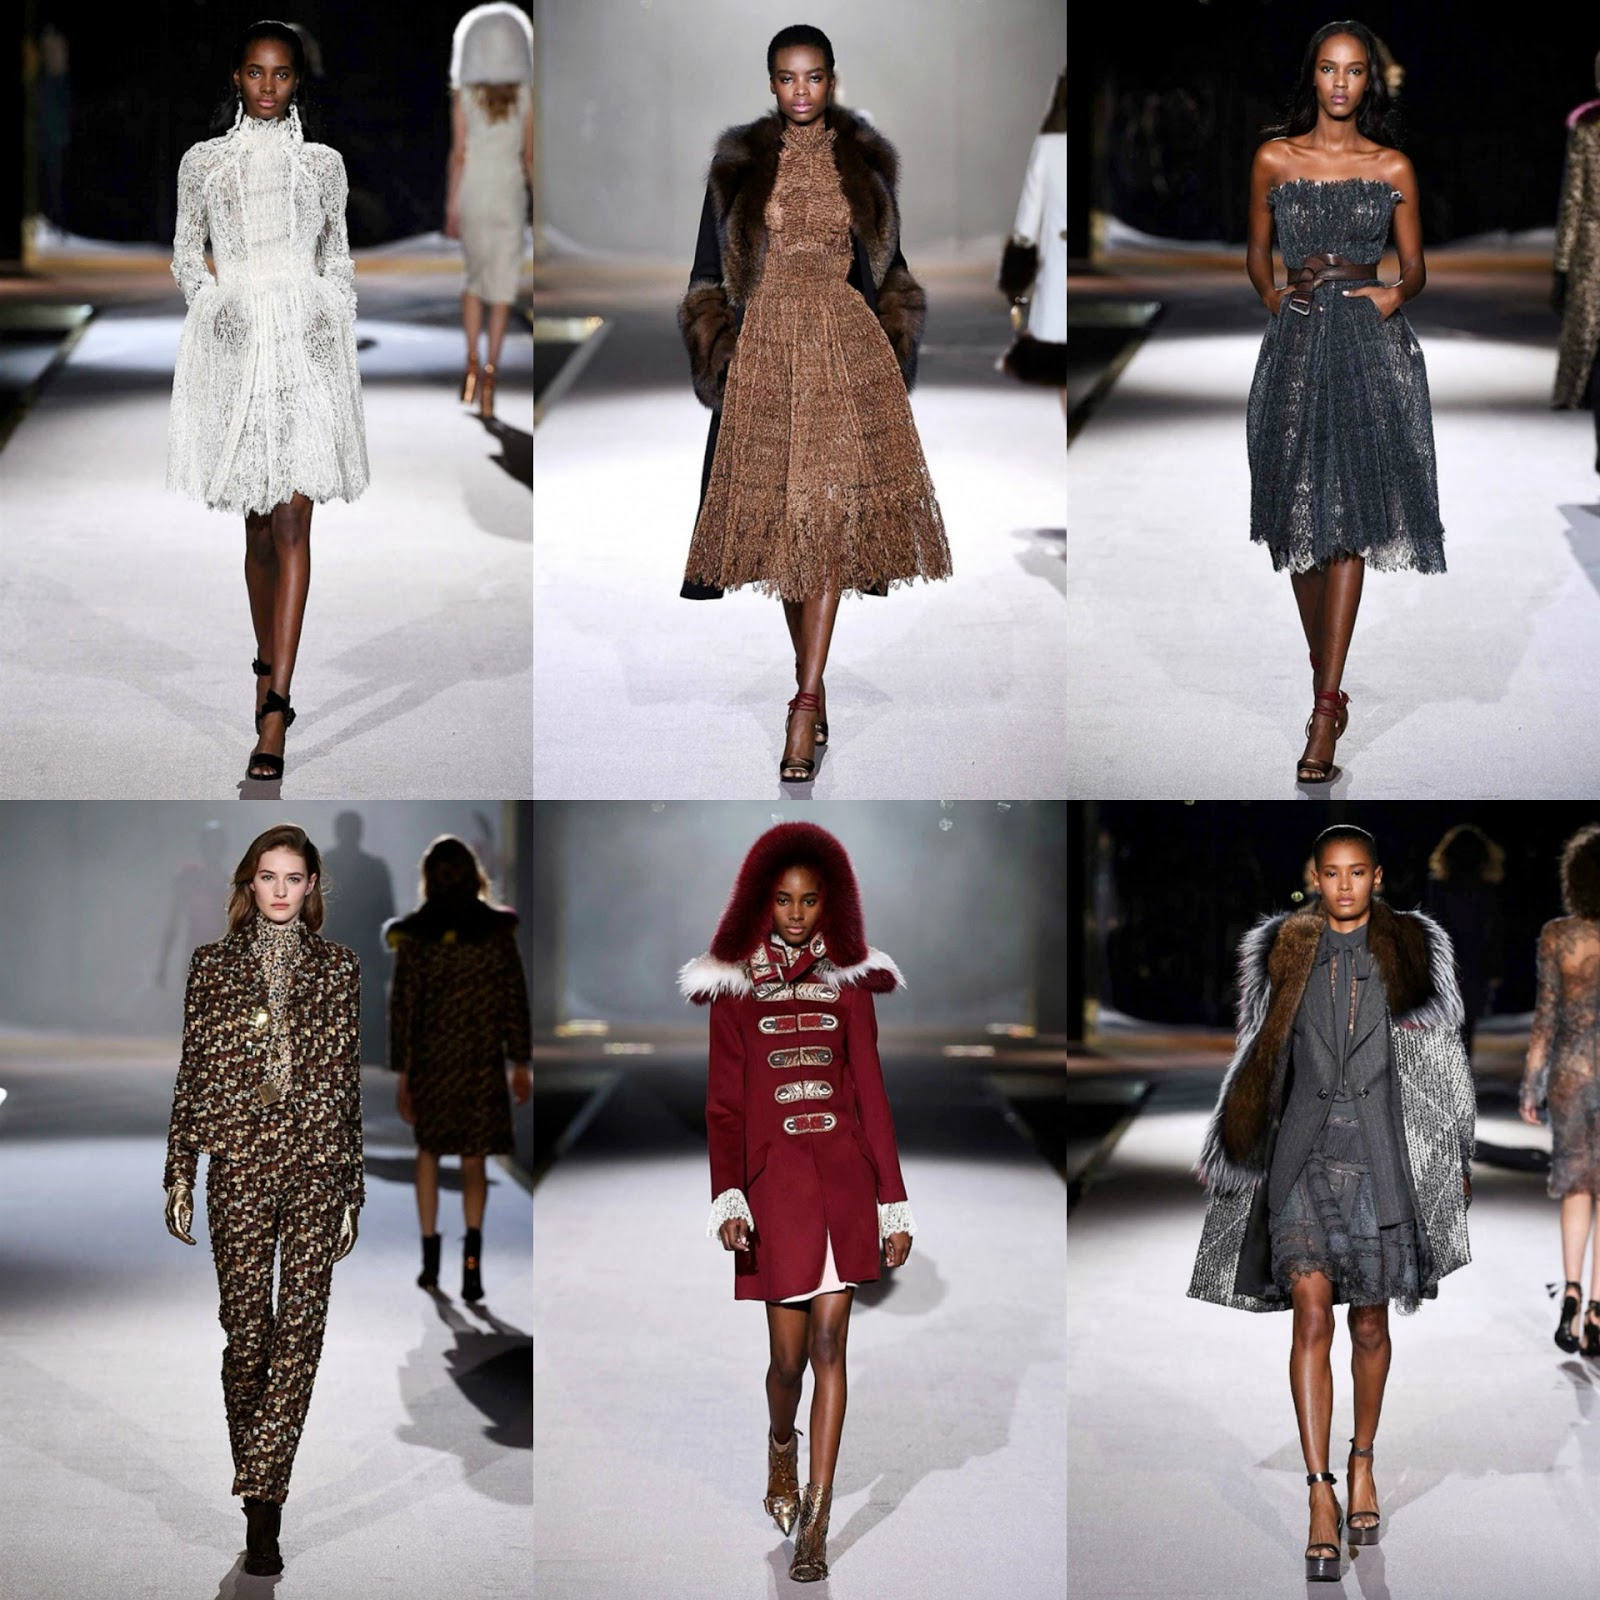 Eniwhere Fashion - sfilate - Milano Fashion Week - Ermanno Scervino